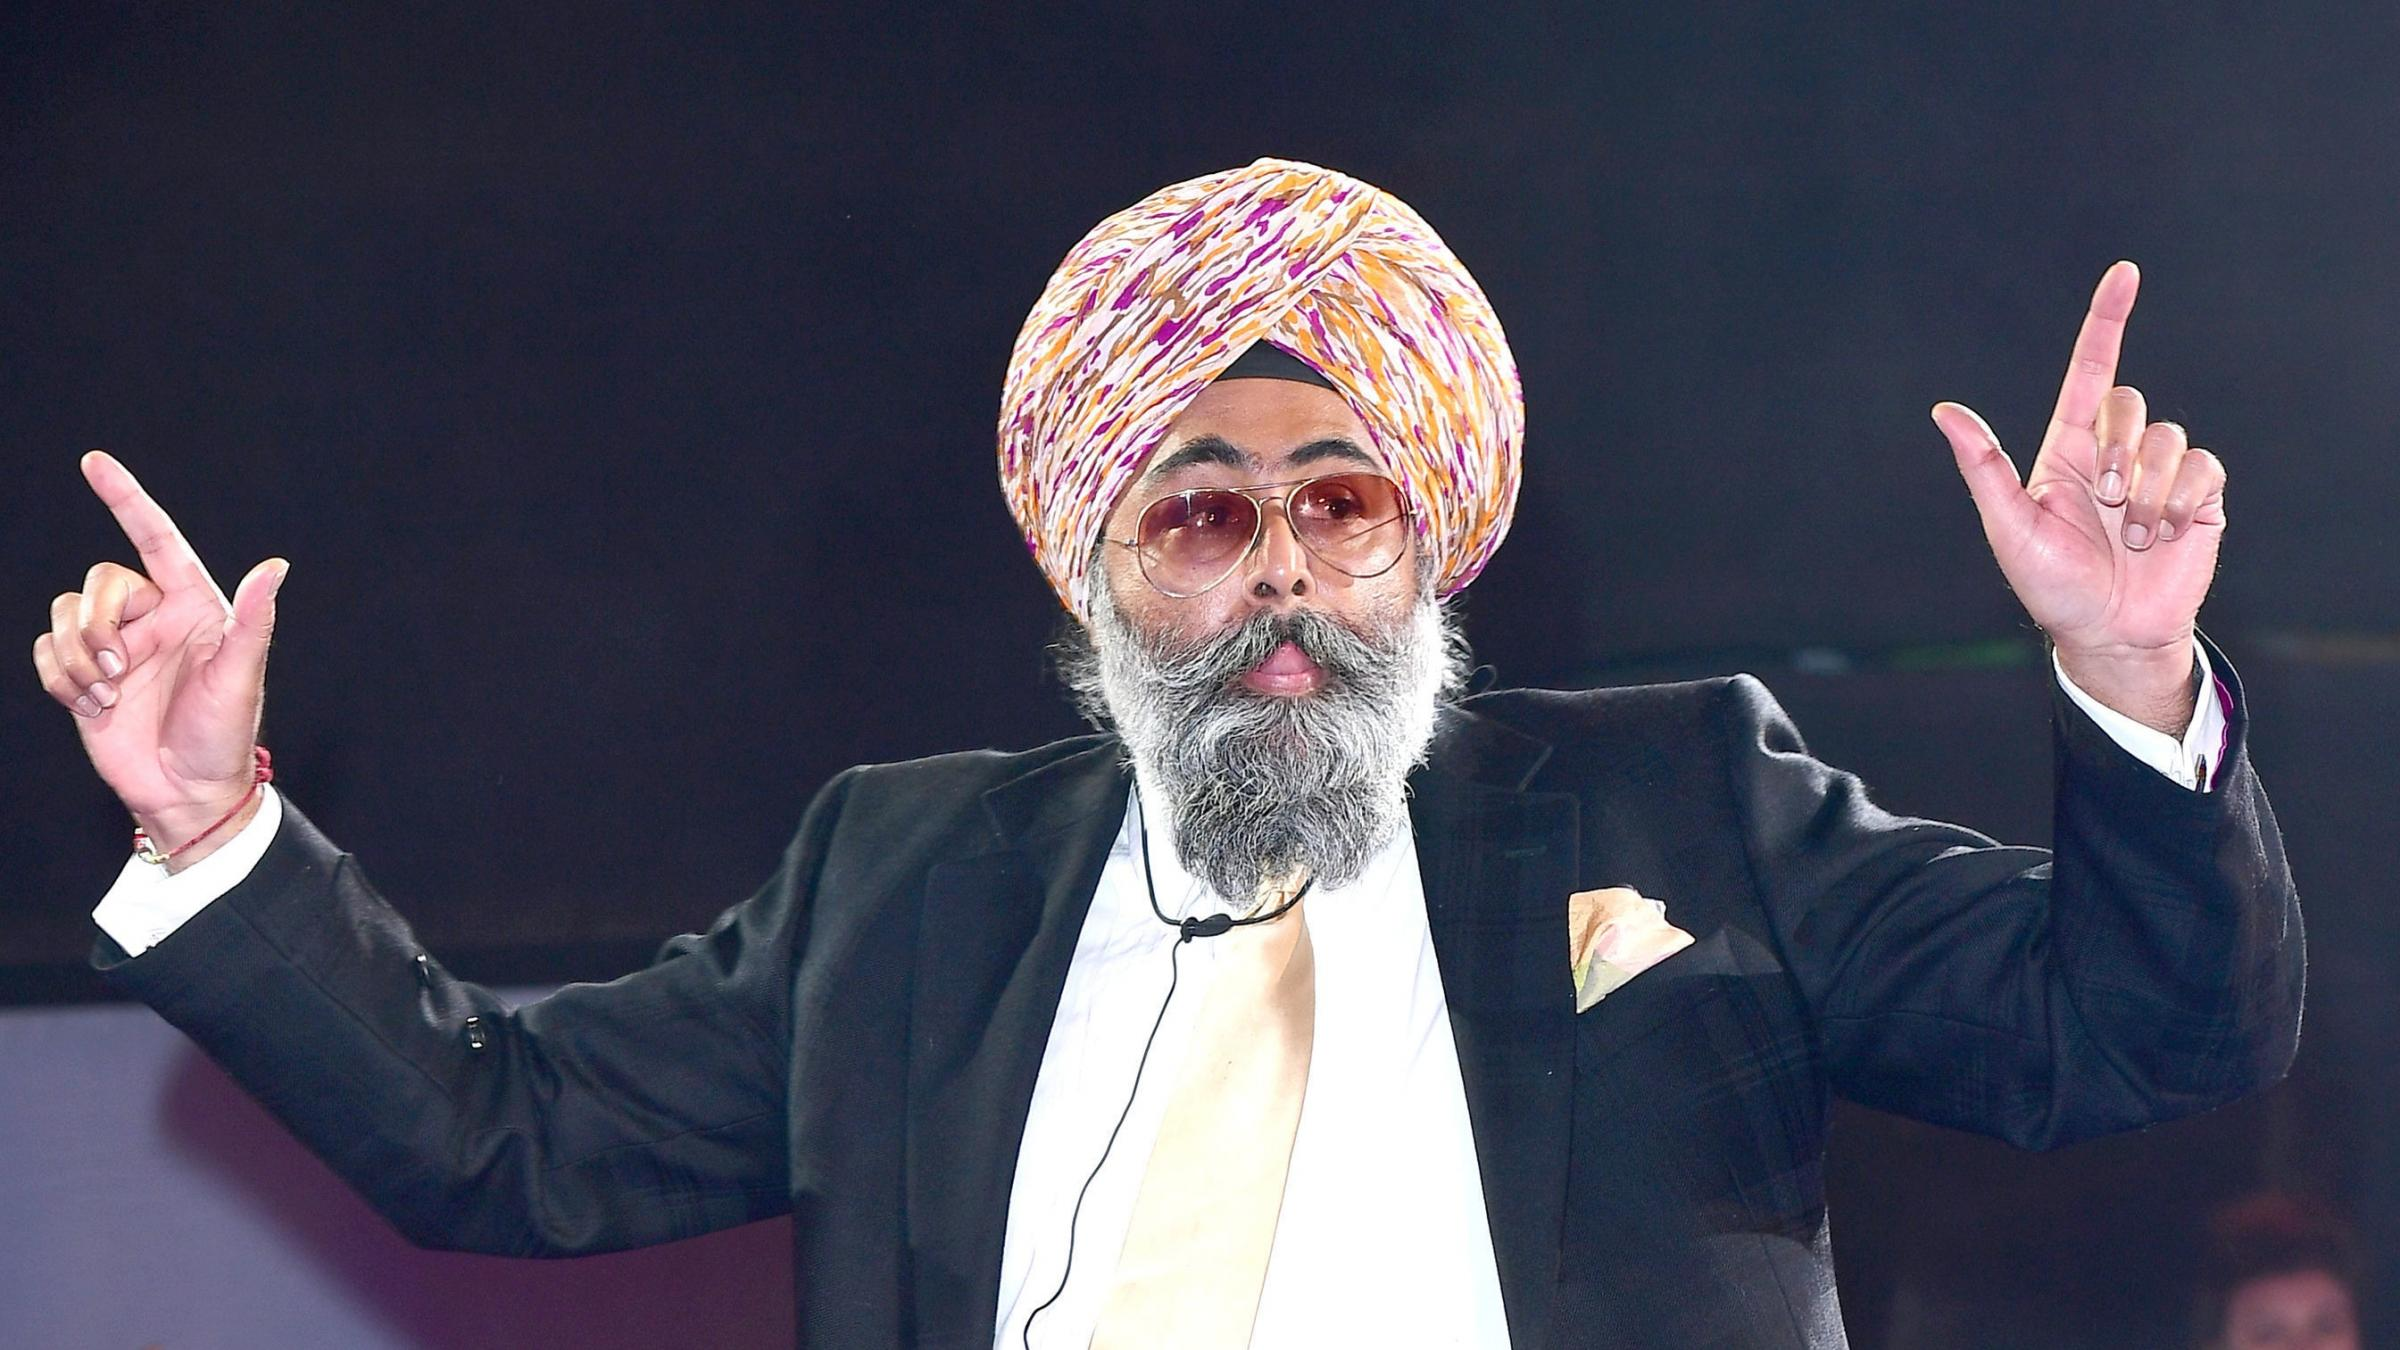 Ex-Big Brother contestant Hardeep Singh Kohli fails to appear in dock for second time